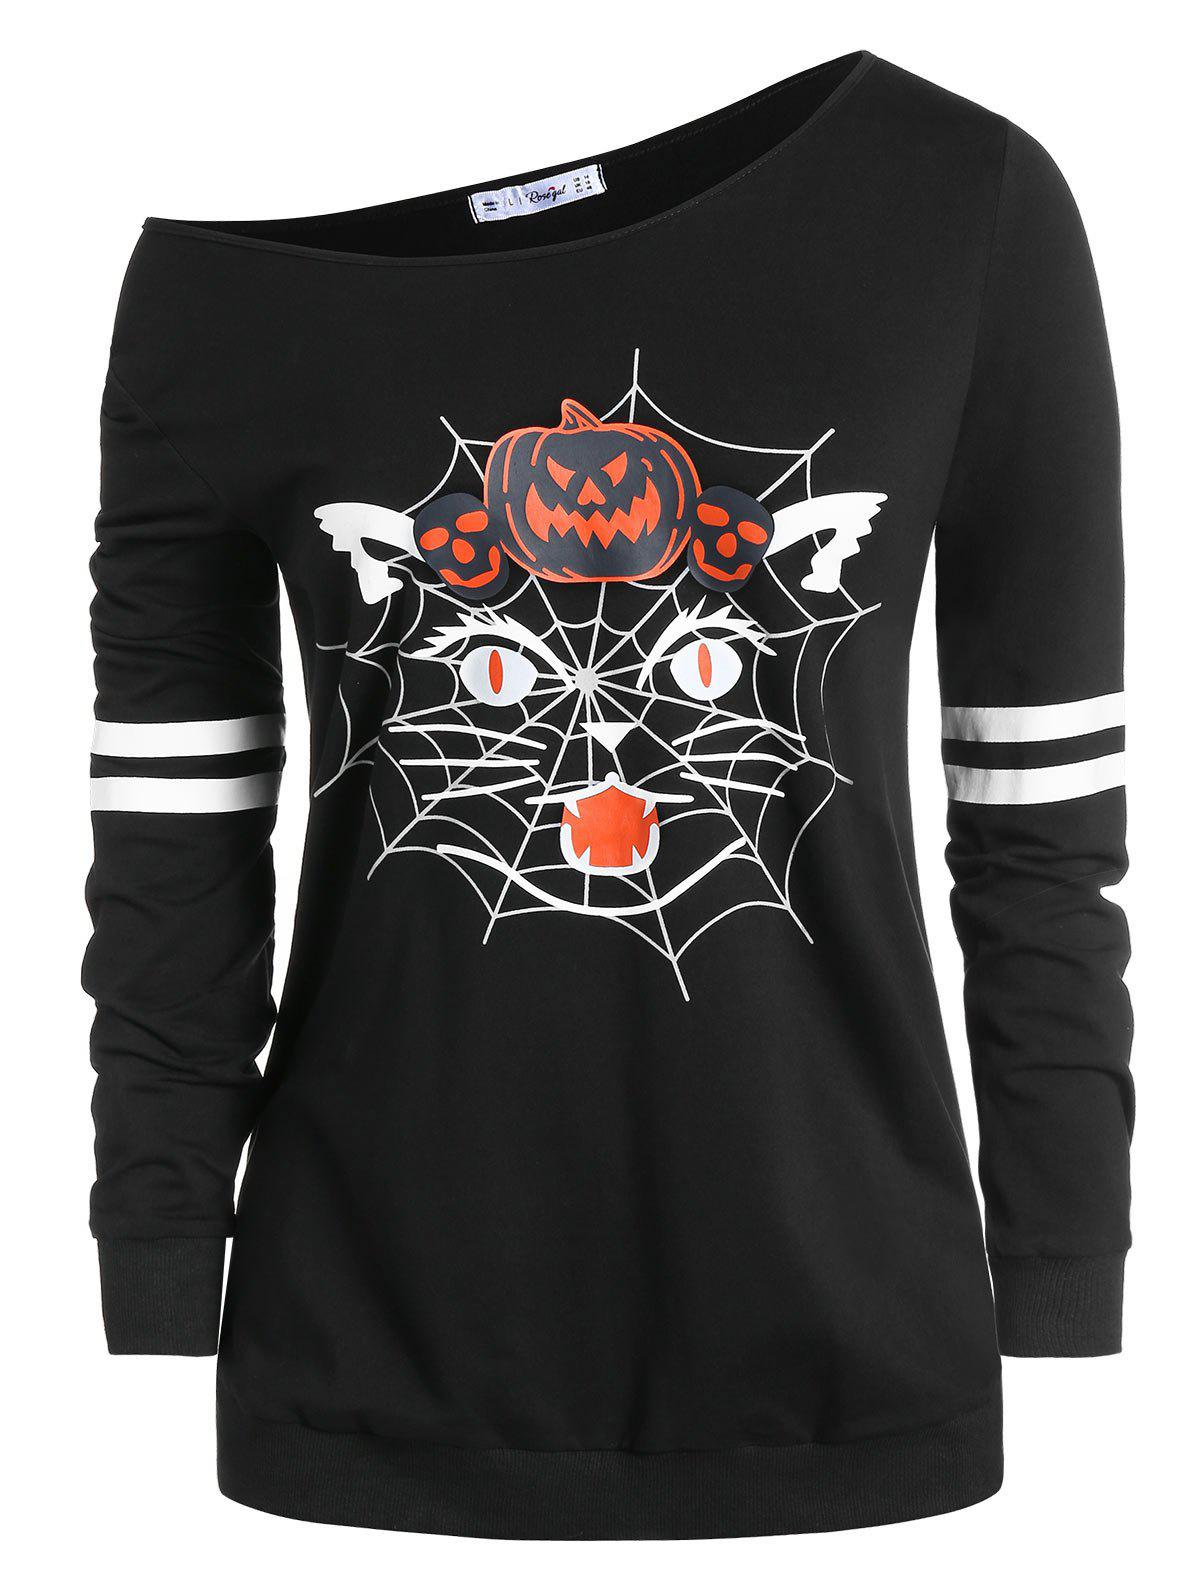 Plus Size Halloween Skew Neck Pumpkin Spider Web Print Sweatshirt